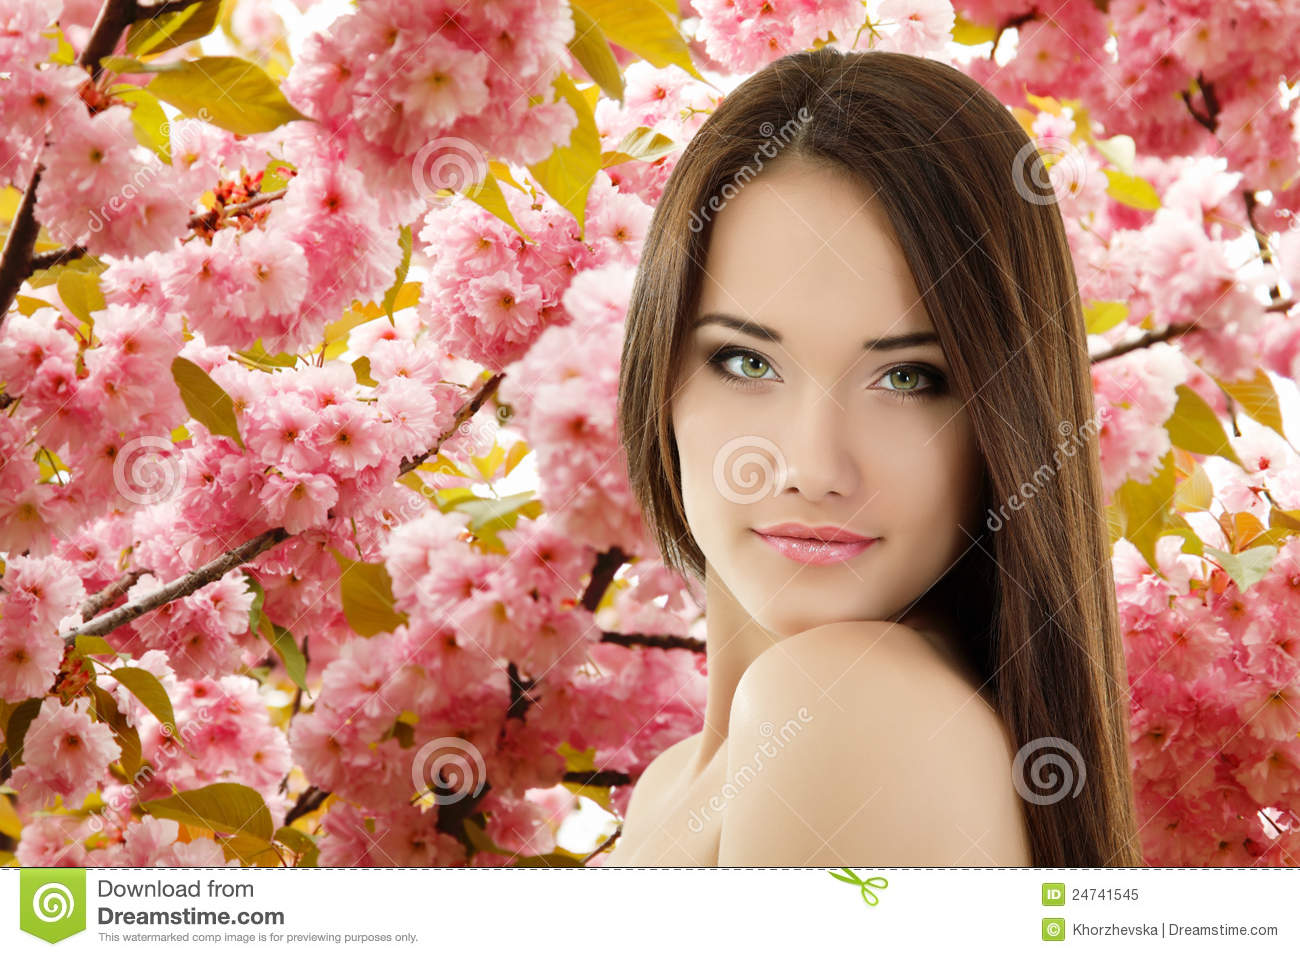 Teen glamour flower manage